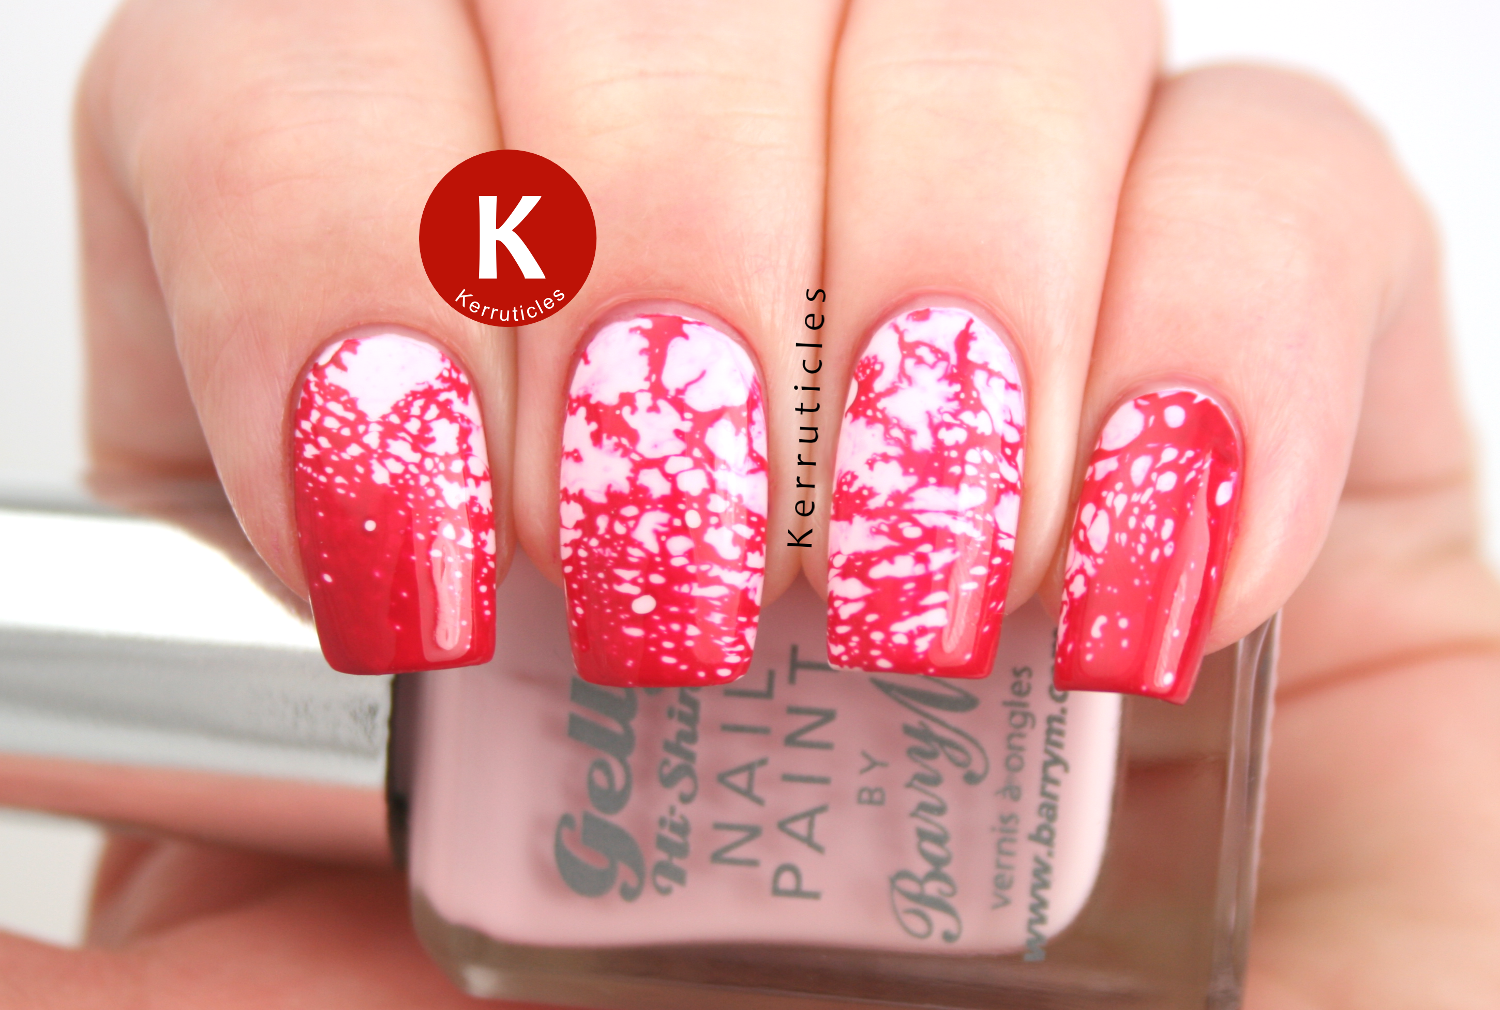 Pink water spotted nails using Barry M Rose Hip and Barry M Pomegranate